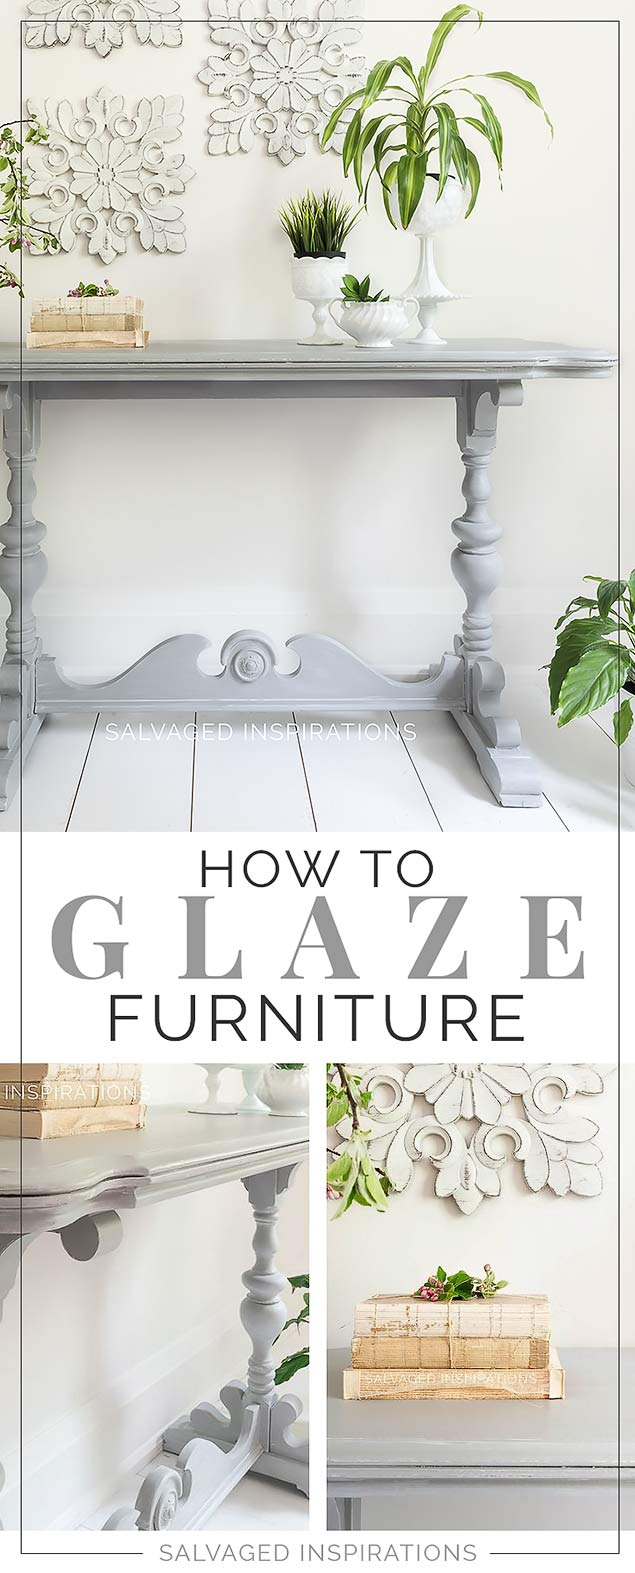 How To Glaze Furniture Salvaged Inspirations